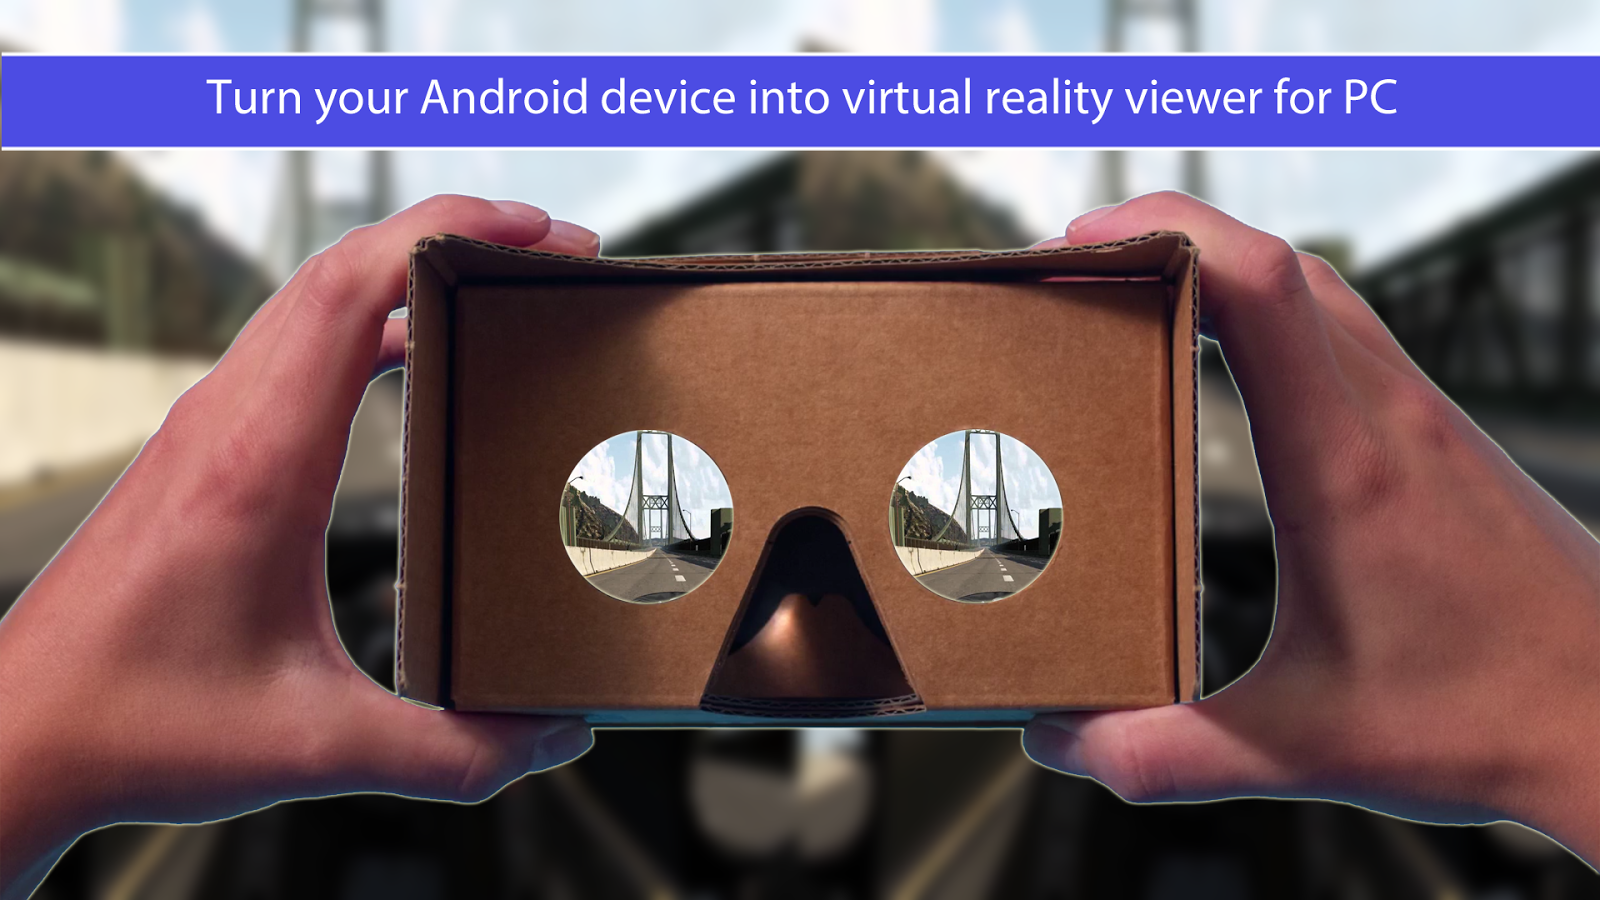 kinovr 3d virtual reality 2 0 2 apk download android entertainment apps. Black Bedroom Furniture Sets. Home Design Ideas